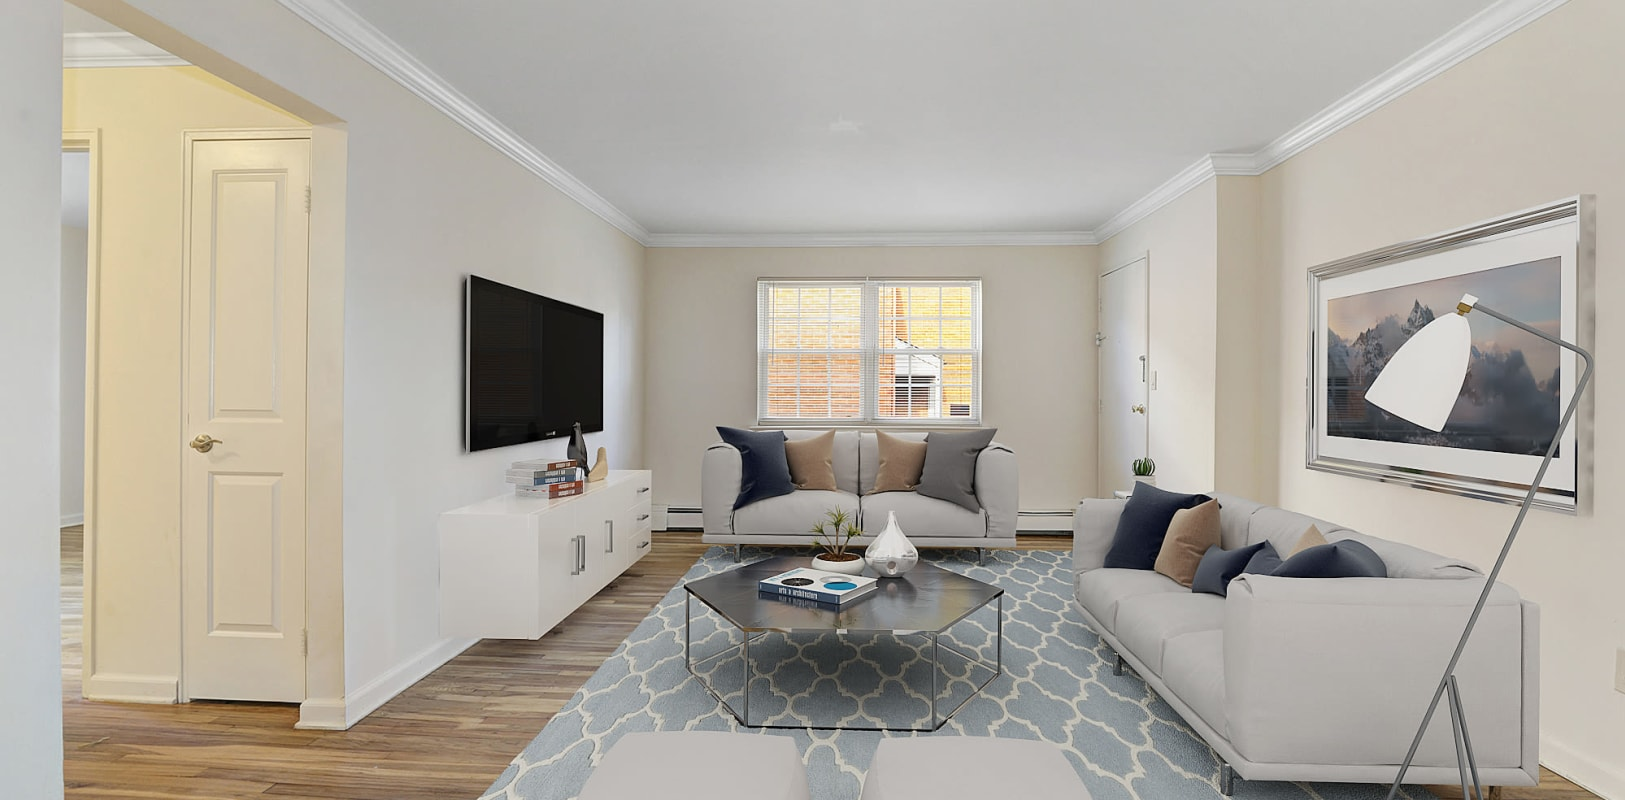 Spacious living room with hardwood flooring at Park Lane Apartments in Little Falls, New Jersey